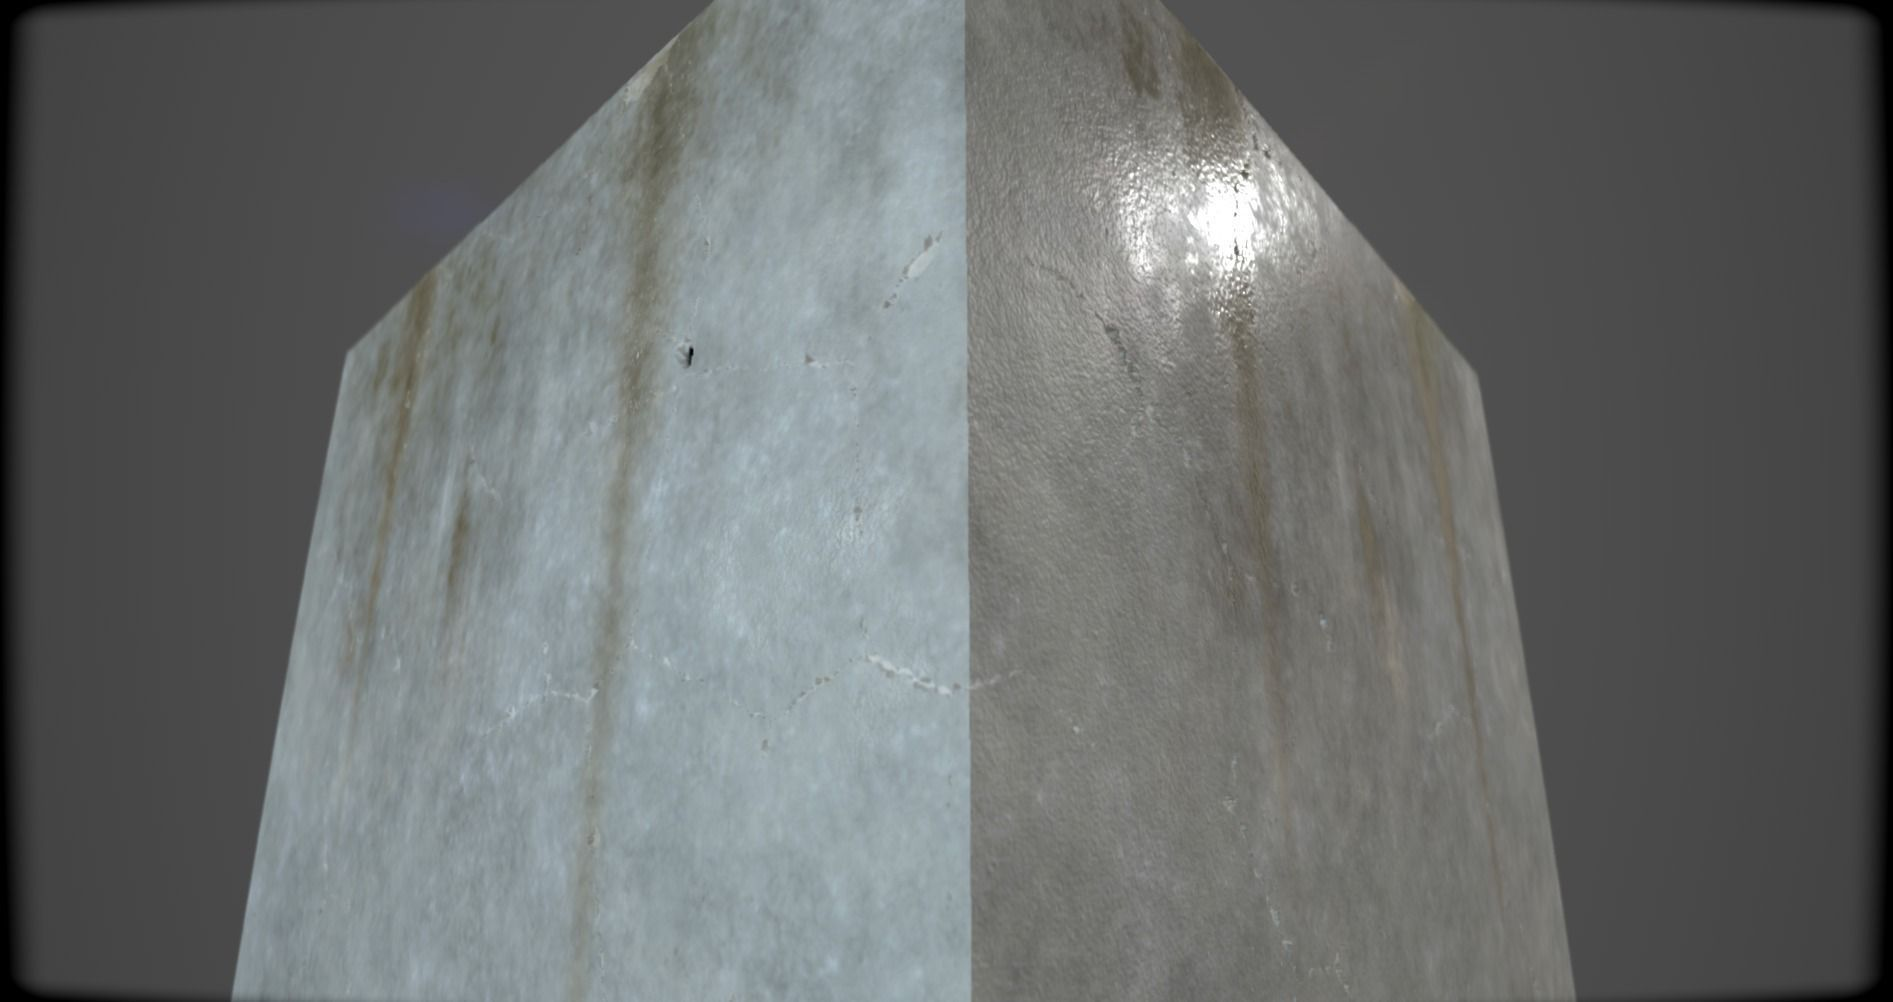 Concrete wall texture damp with leaks free 3d model - Exterior textured masonry paint model ...